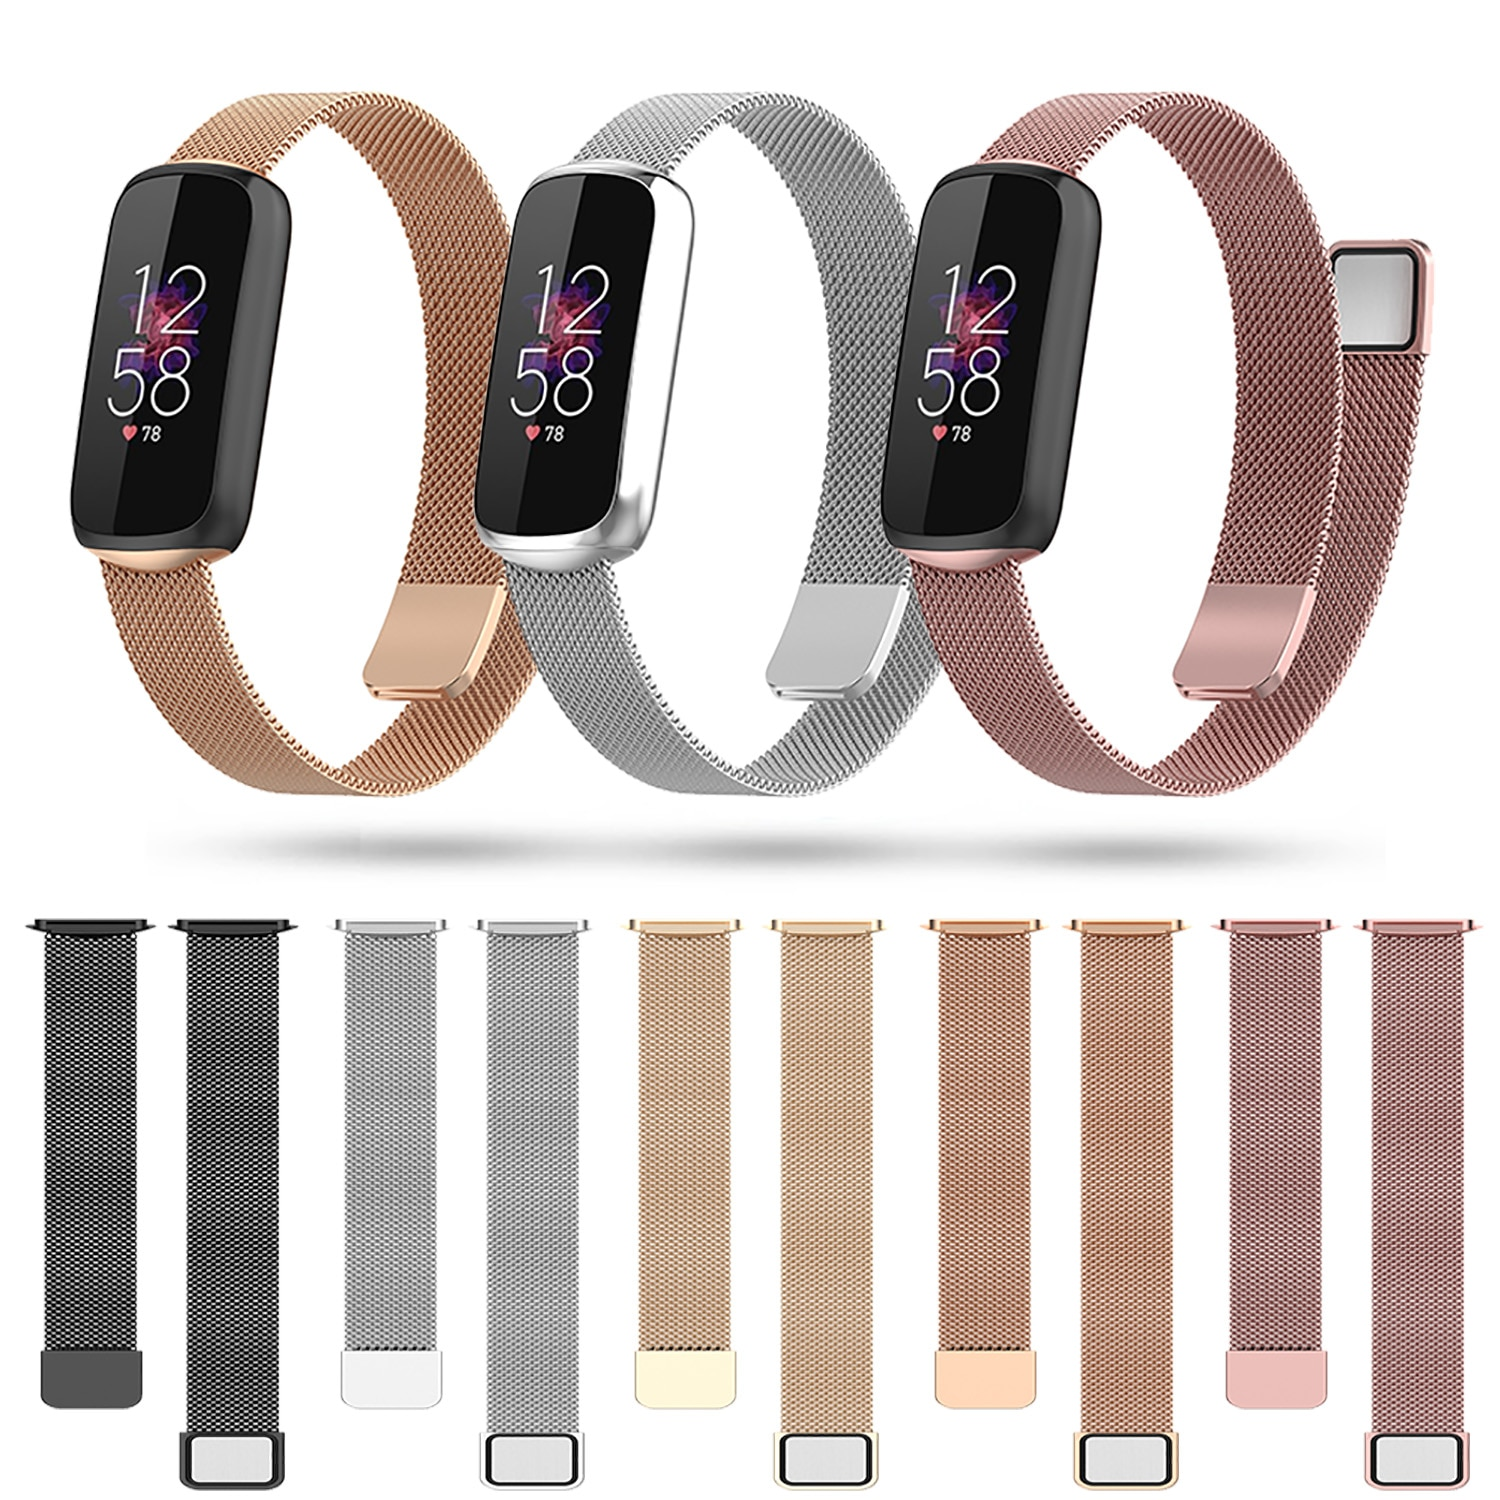 Wrist Strap For Fitbit Luxe Metal Watch Band For Fitbit Luxe Stainless Steel Bracelet Adjustable Loo